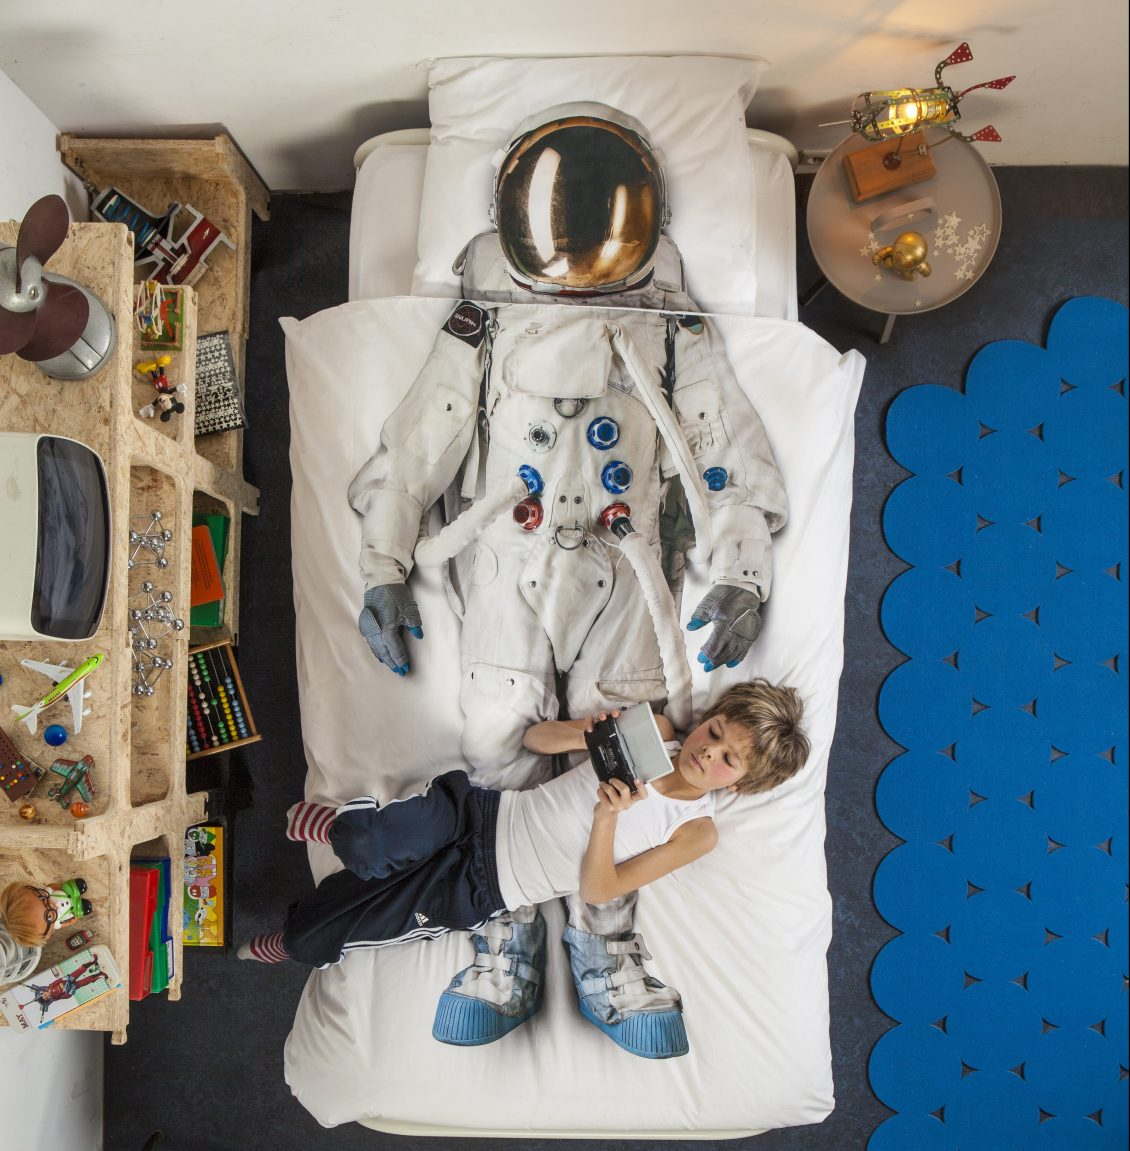 A little boy is seen laying on his bed covered by an Astronaut duvet cover from Snurk Living